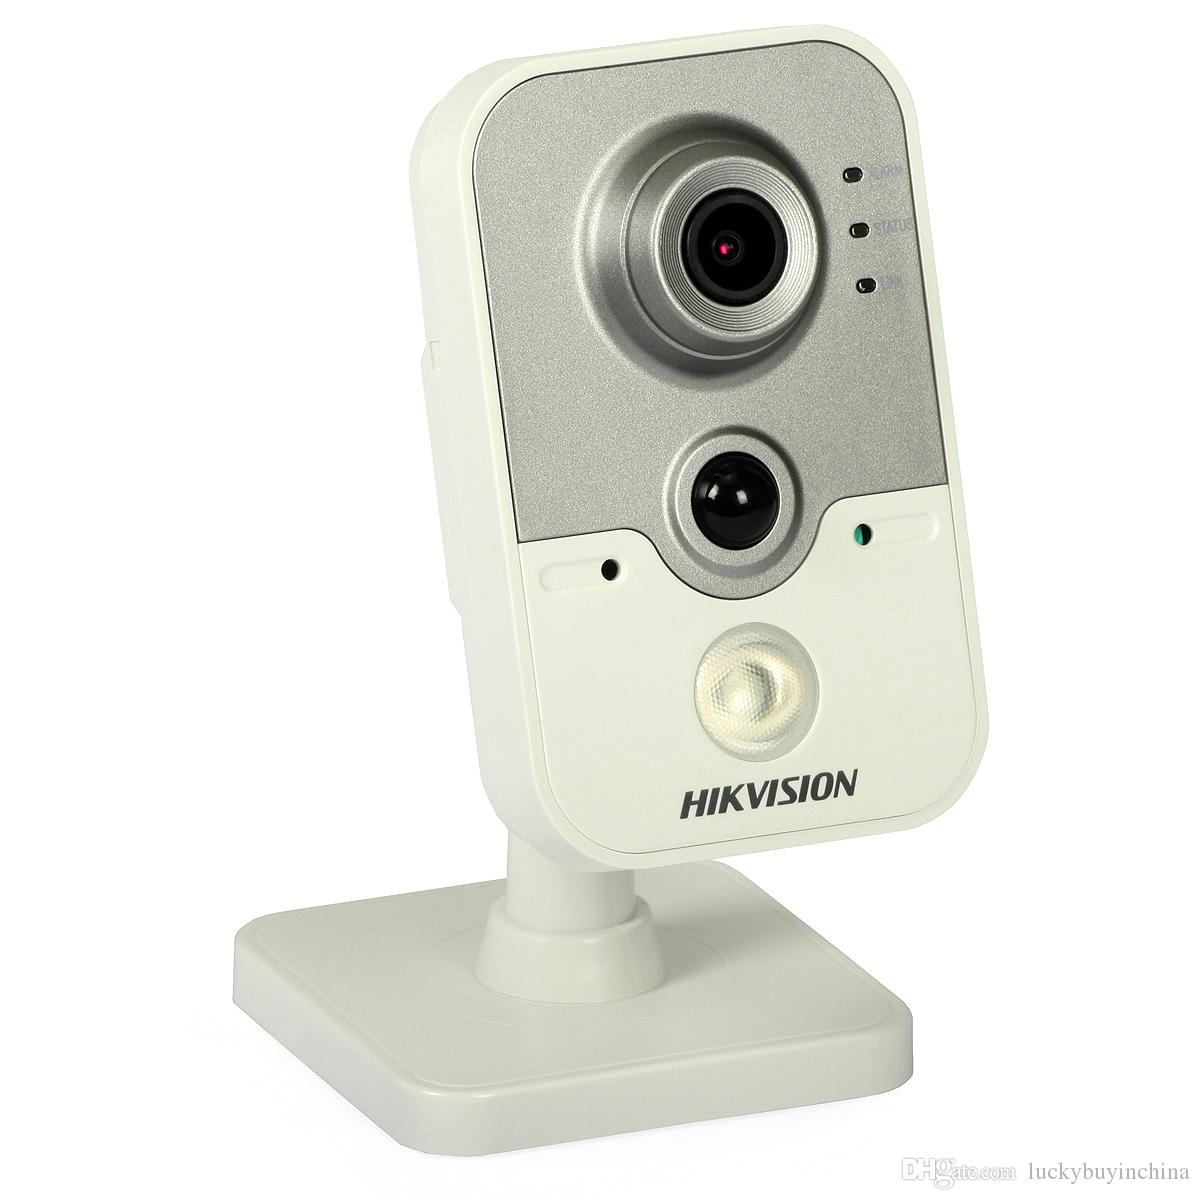 Hikvision 5mp ip camera pir ds 2cd2452f iw fixed ir cubewith hikvision 5mp ip camera pir ds 2cd2452f iw fixed ir cubewith wifiaudiopoe english firmware webcam camera webcam camera online from luckybuyinchina sciox Image collections